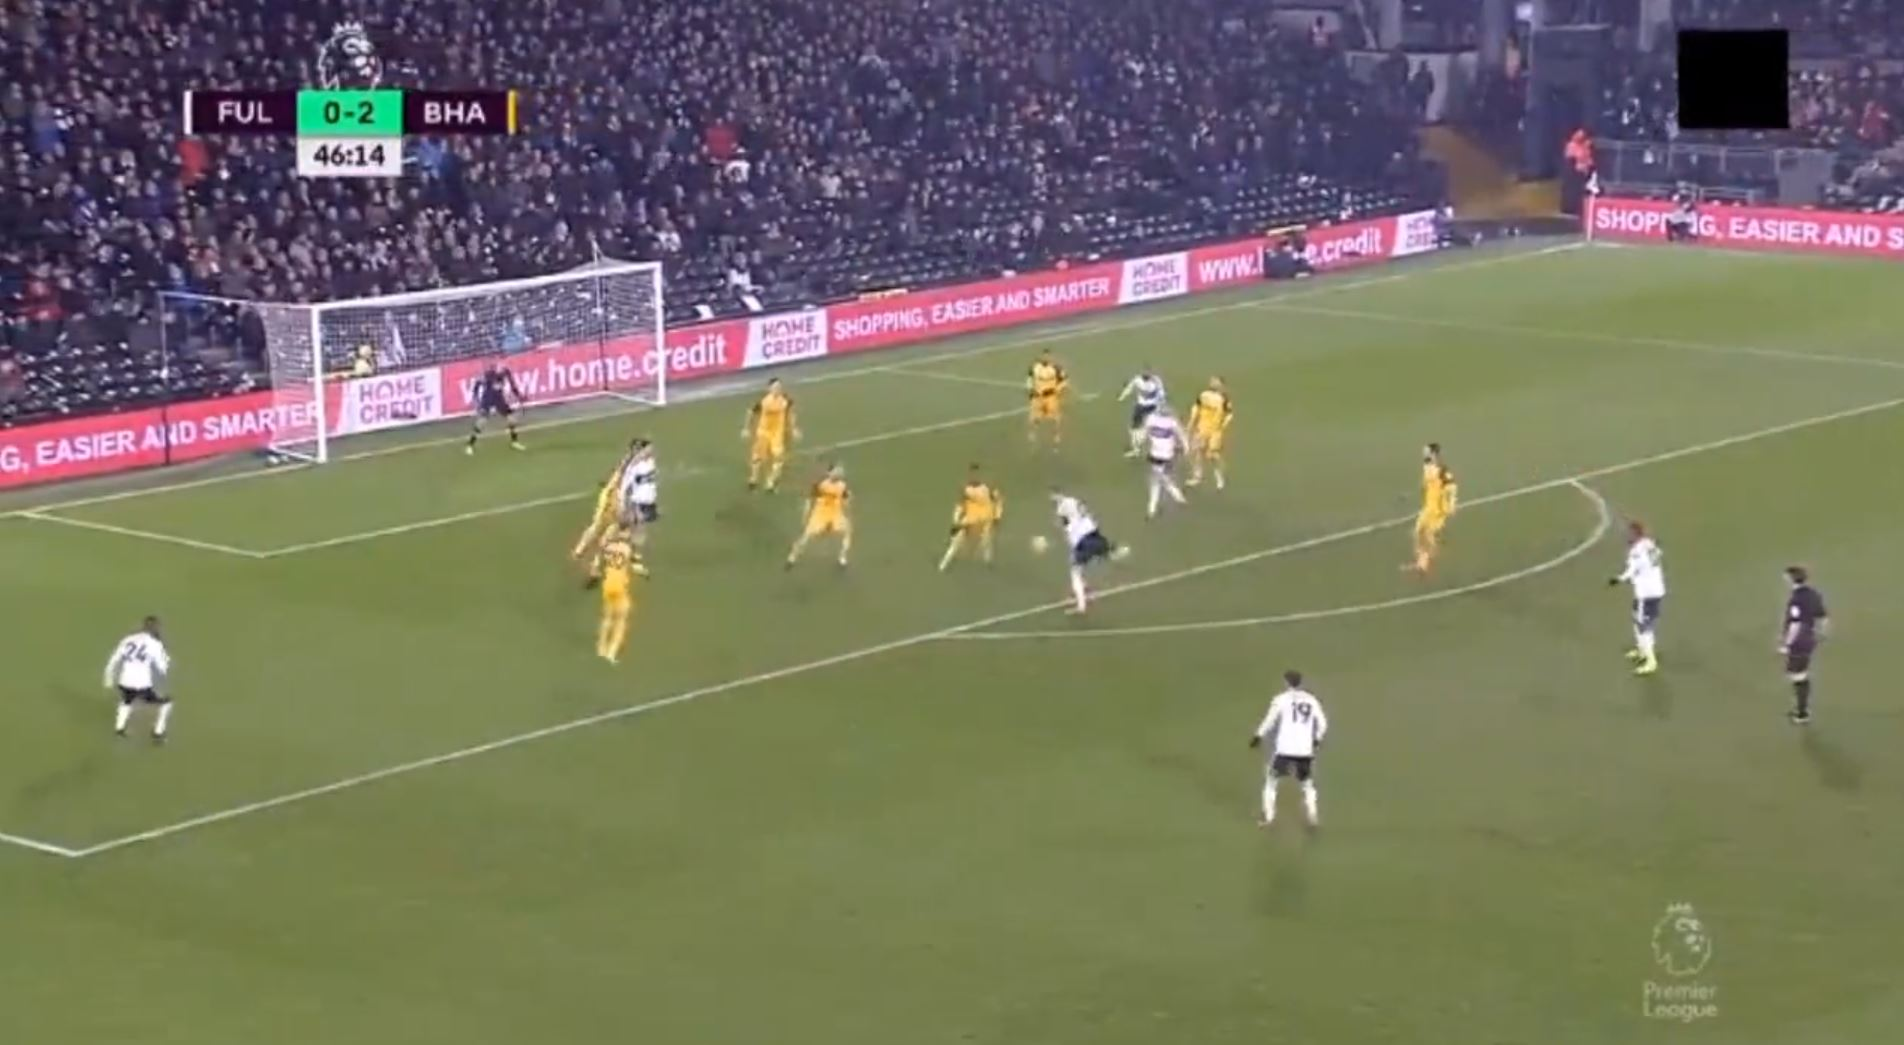 WATCH: Calum Chambers Smashes A Half Volley Into The Top Corner From The Edge Of The Box